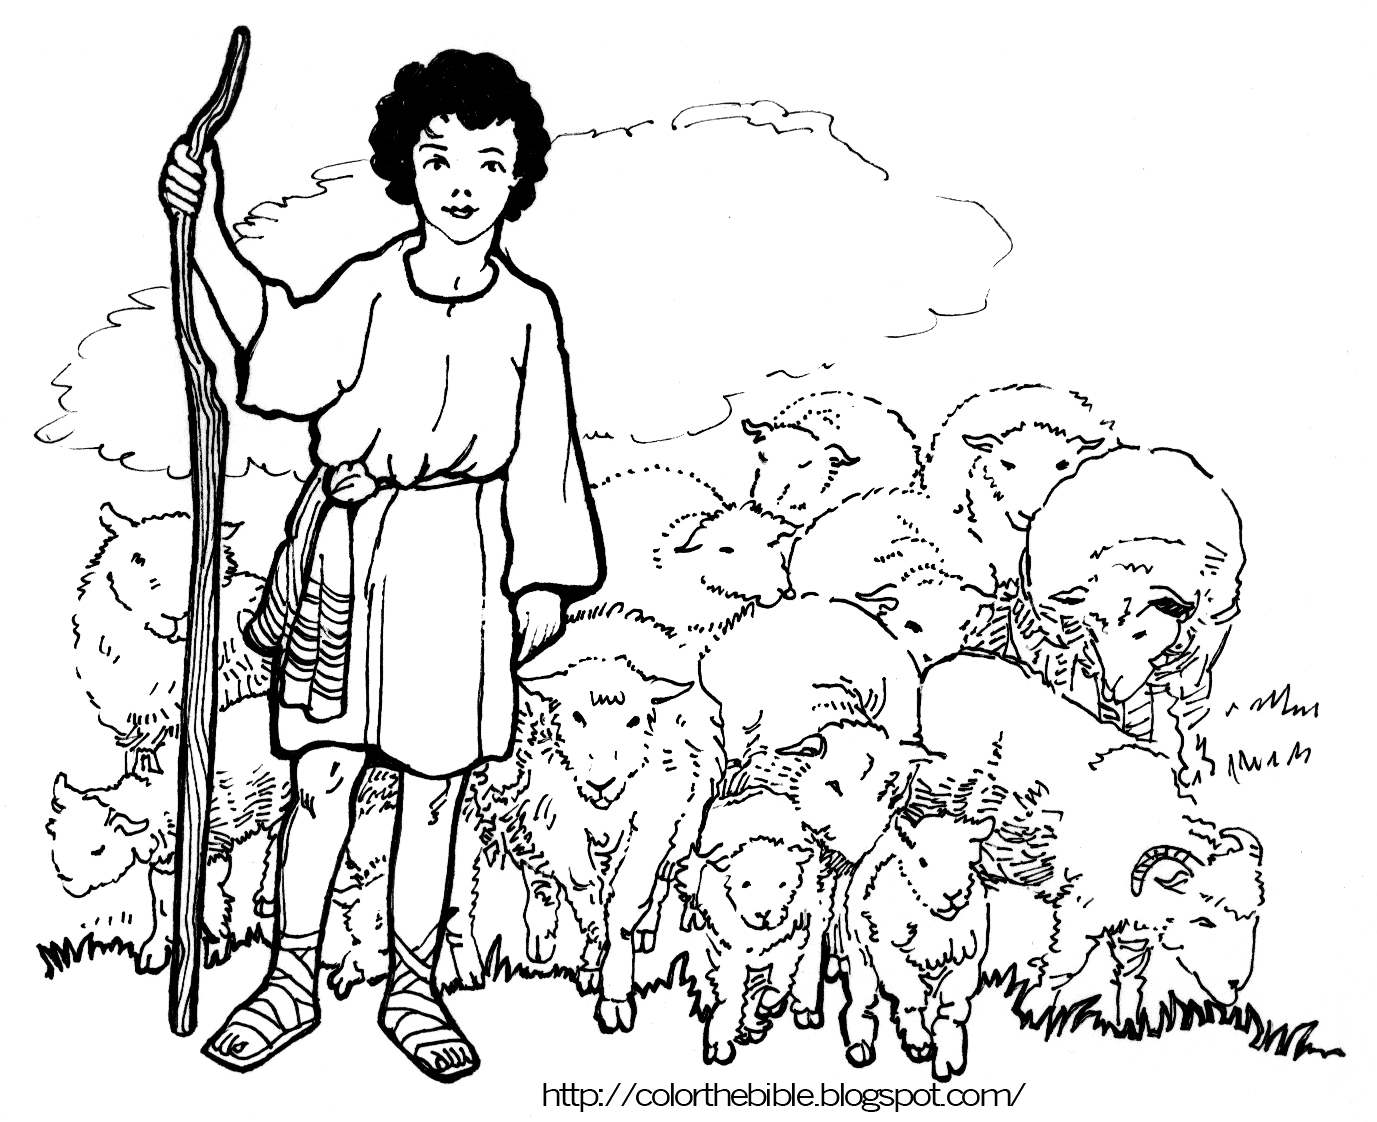 Shepherd boy color the bible for The lord is my shepherd coloring page